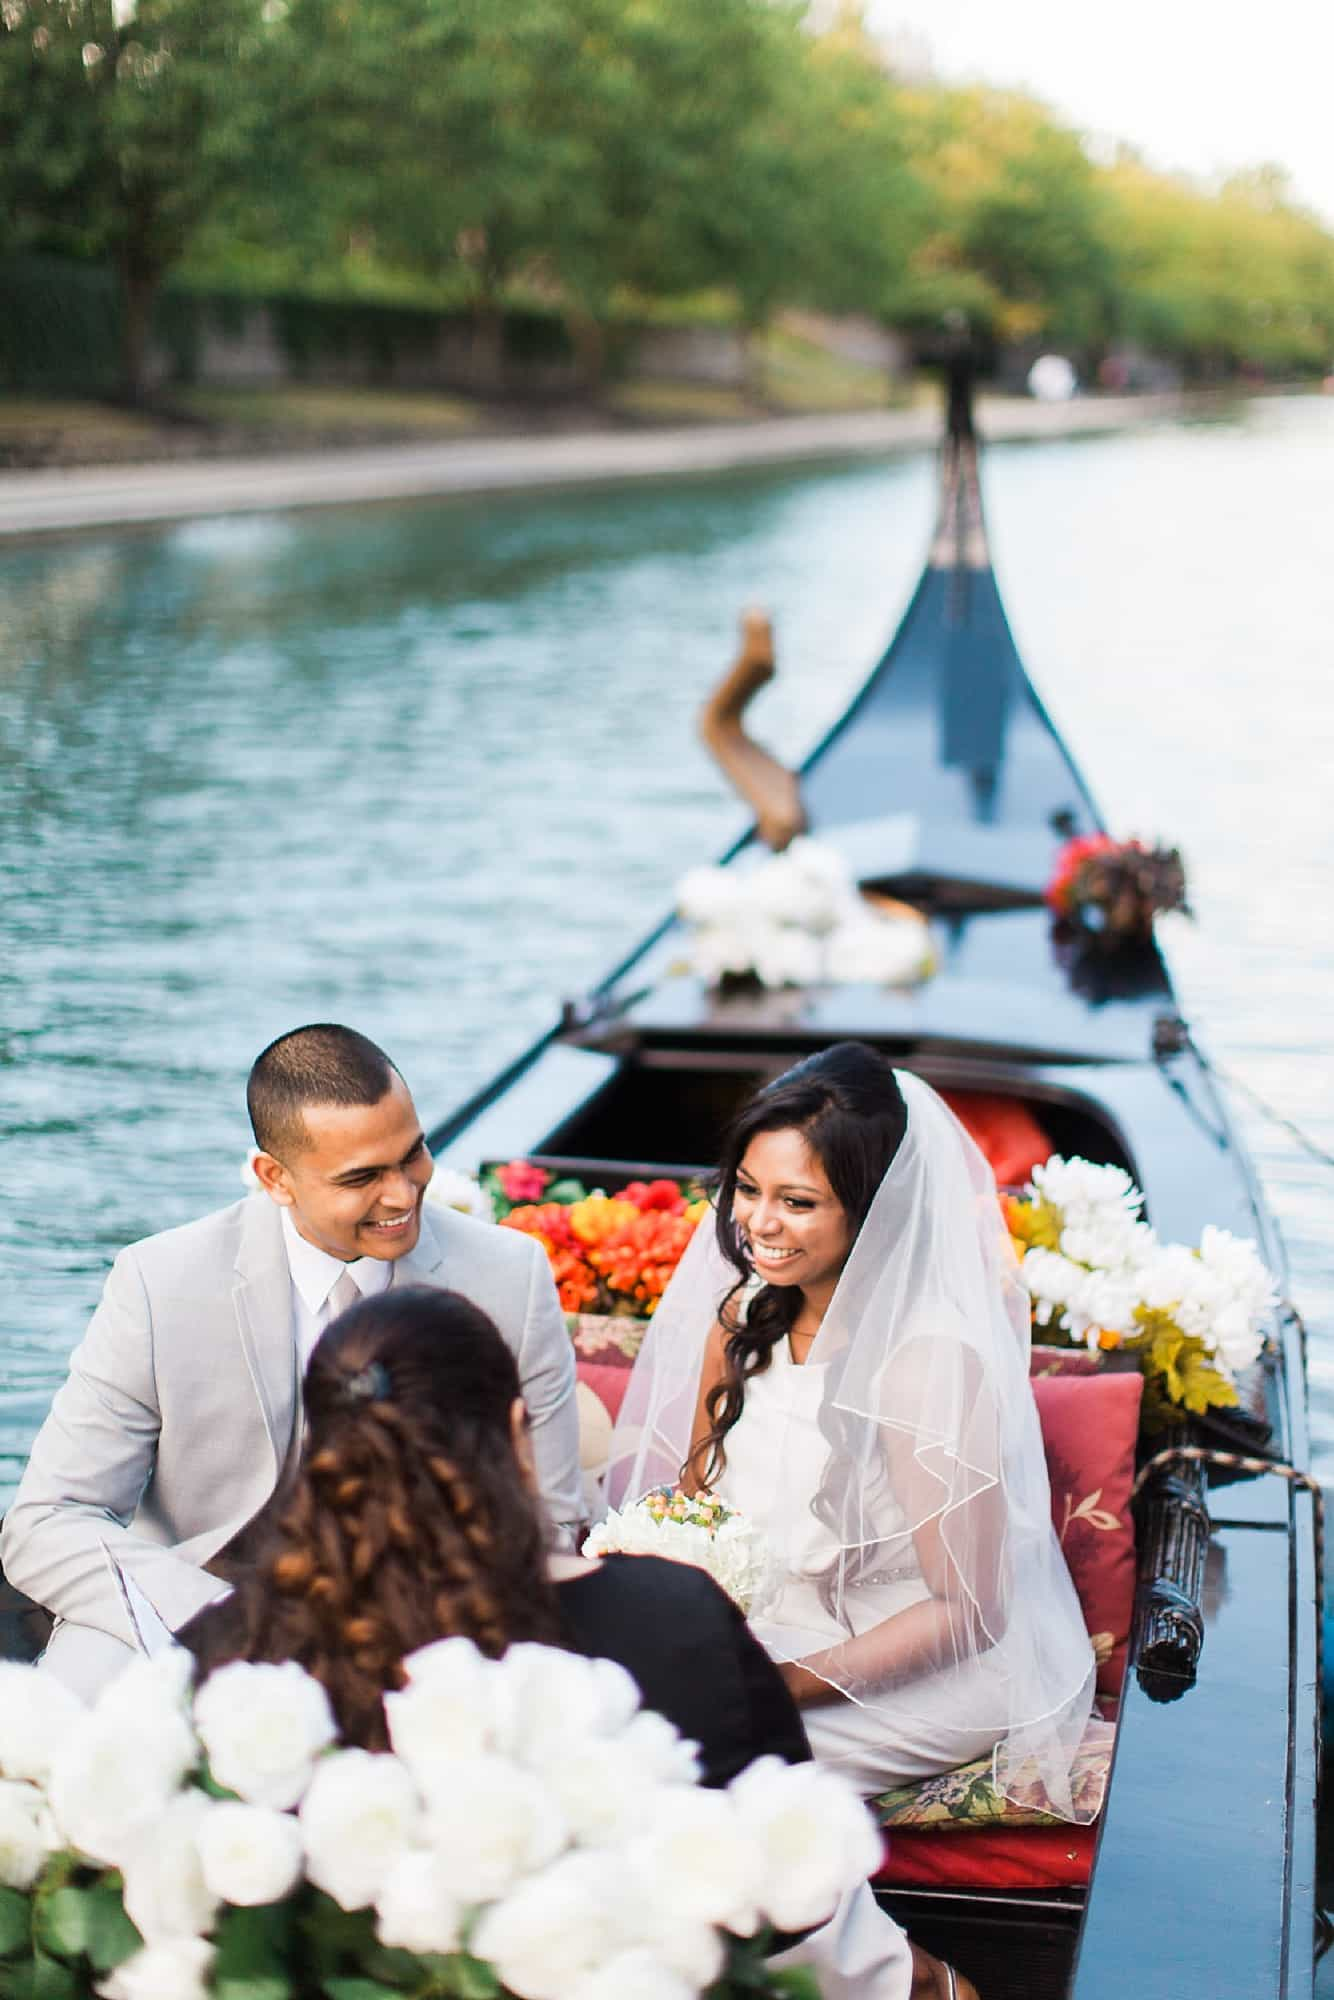 Destination Wedding | Dress and Packing Tips